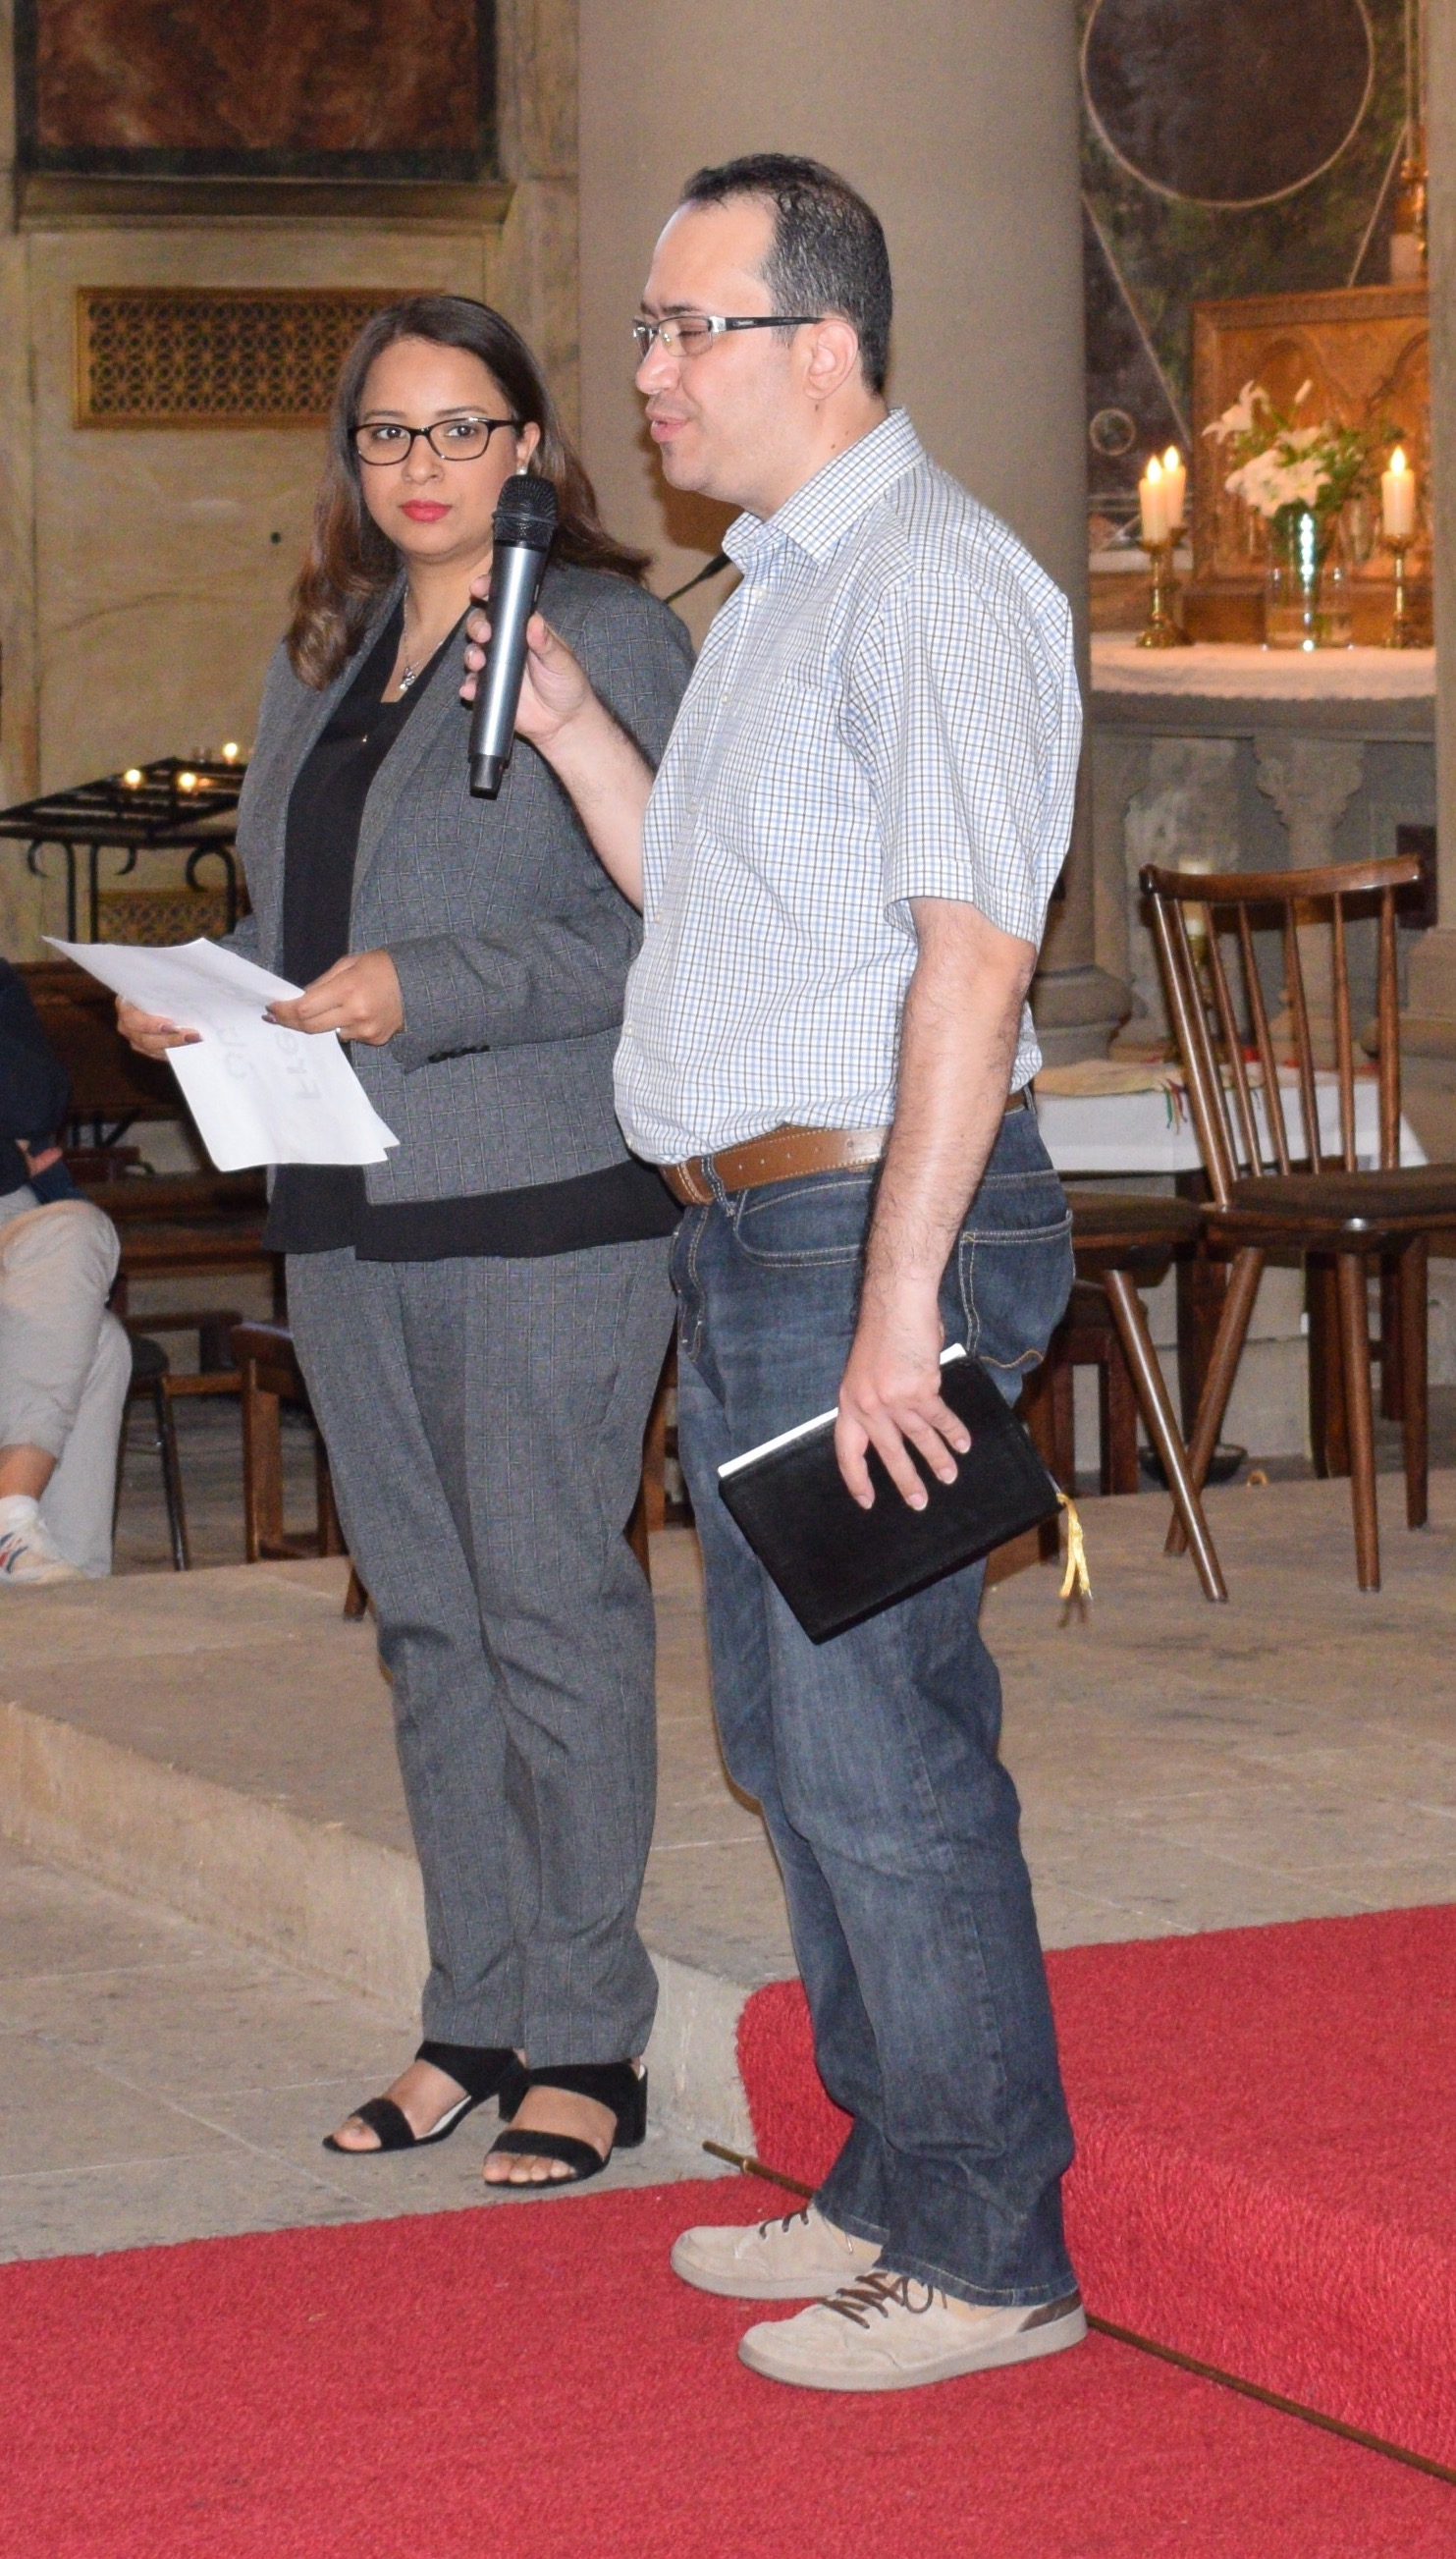 Vahid and Parvaneh: Two of the summer leadership team leading a prayer service for Germany's Kirchentag 2017 (see last letter).